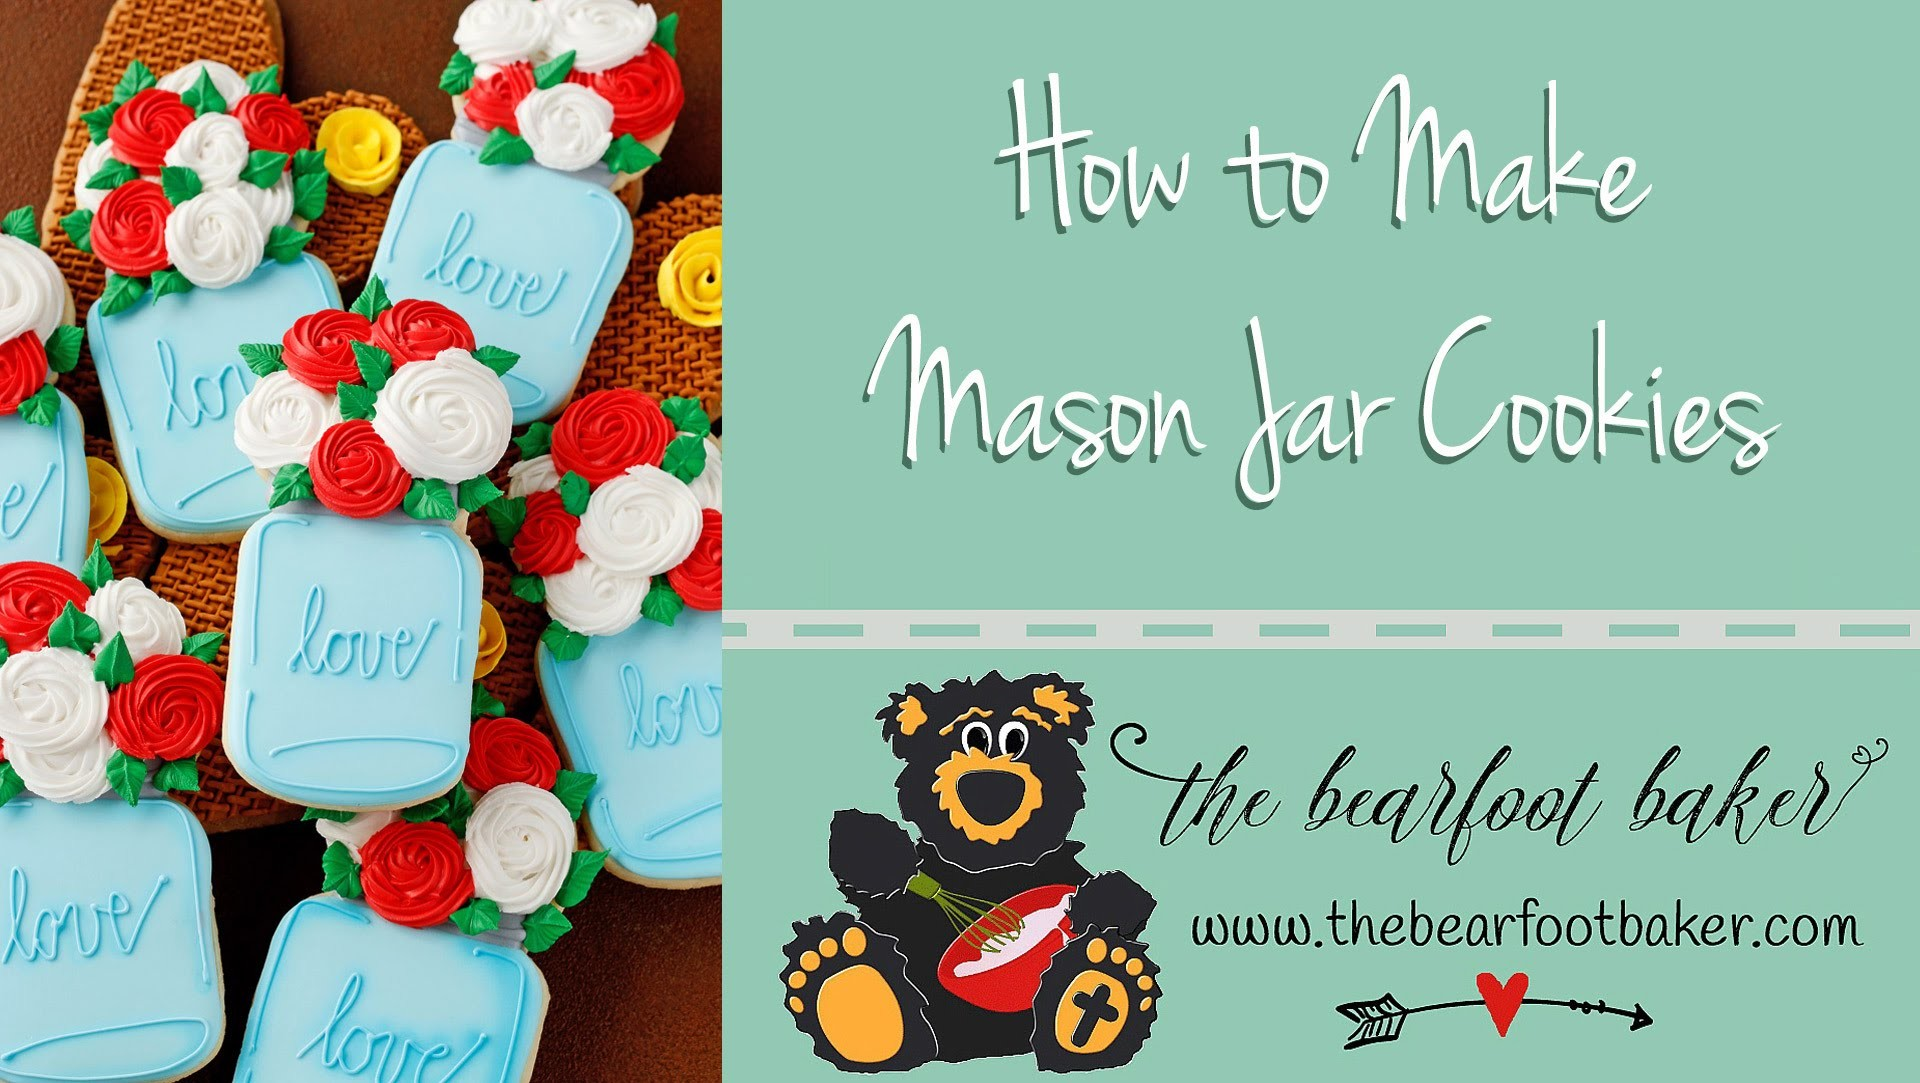 How to Make a Mason Jar Cookies with Flowers Video   The Bearfoot Baker